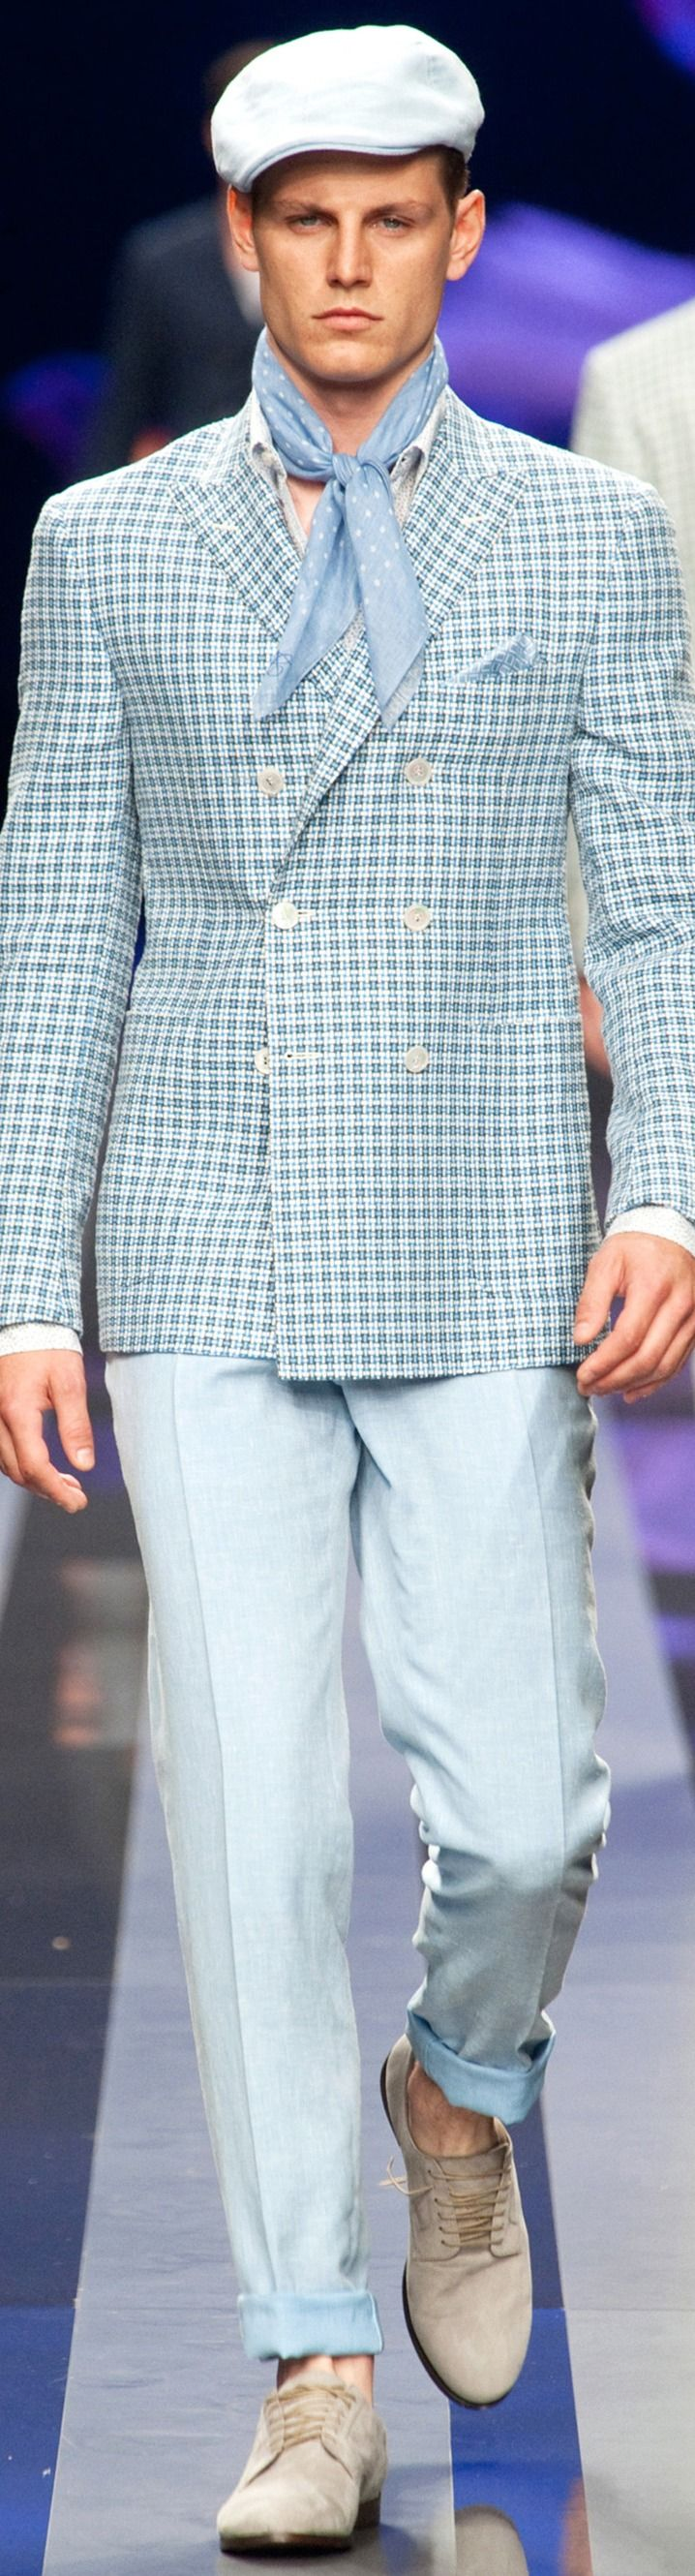 Canali Menswear | Shop designer menswear from top brands including Brooks Brothers, Canali, Ermenegildo Zegna, Hugo Boss & Ralph Lauren. Find Casual Shirts, Polos, Sweaters, Dress Shirts, Pants/Trousers, Blazers, Sport Coats & Accessories for your season wardrobe at designerclothingfans.com